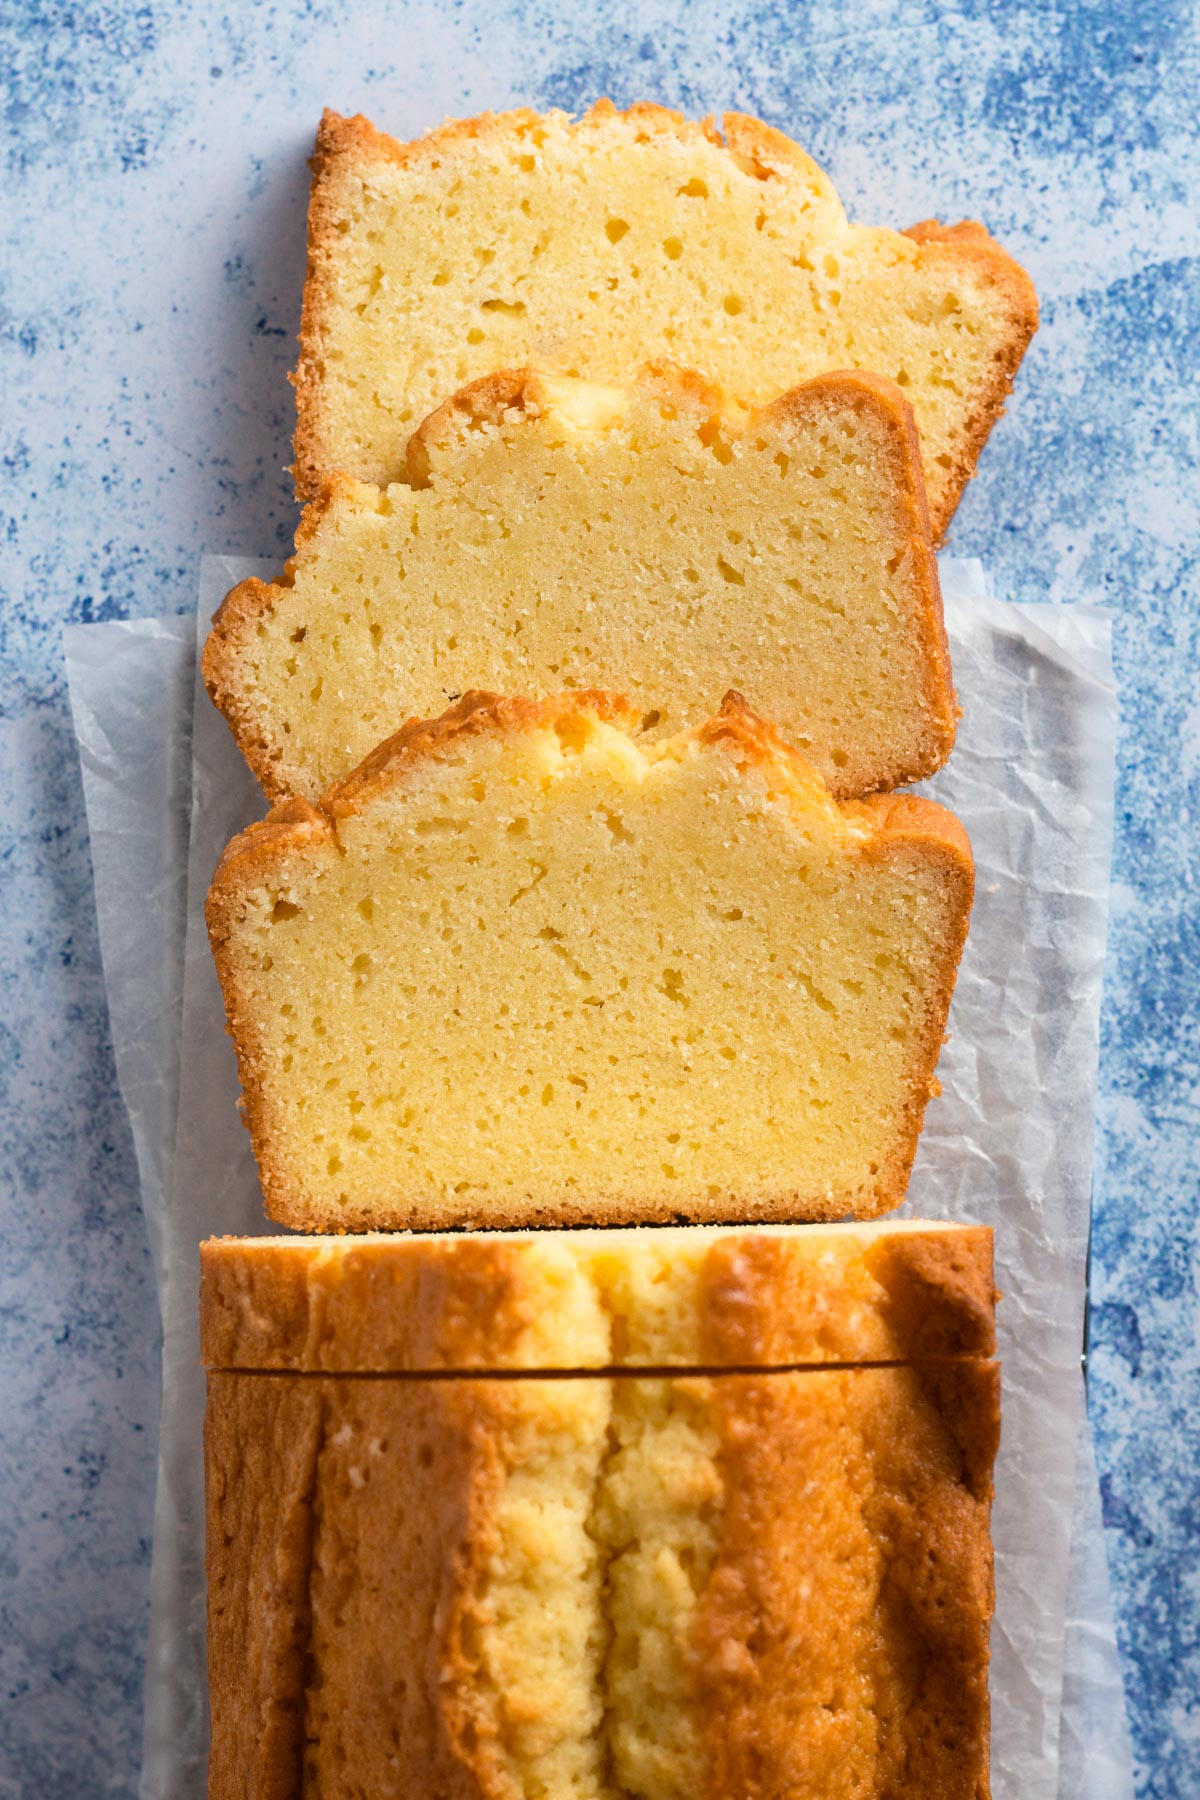 overhead view of a sliced pound cake loaf on a blue surface